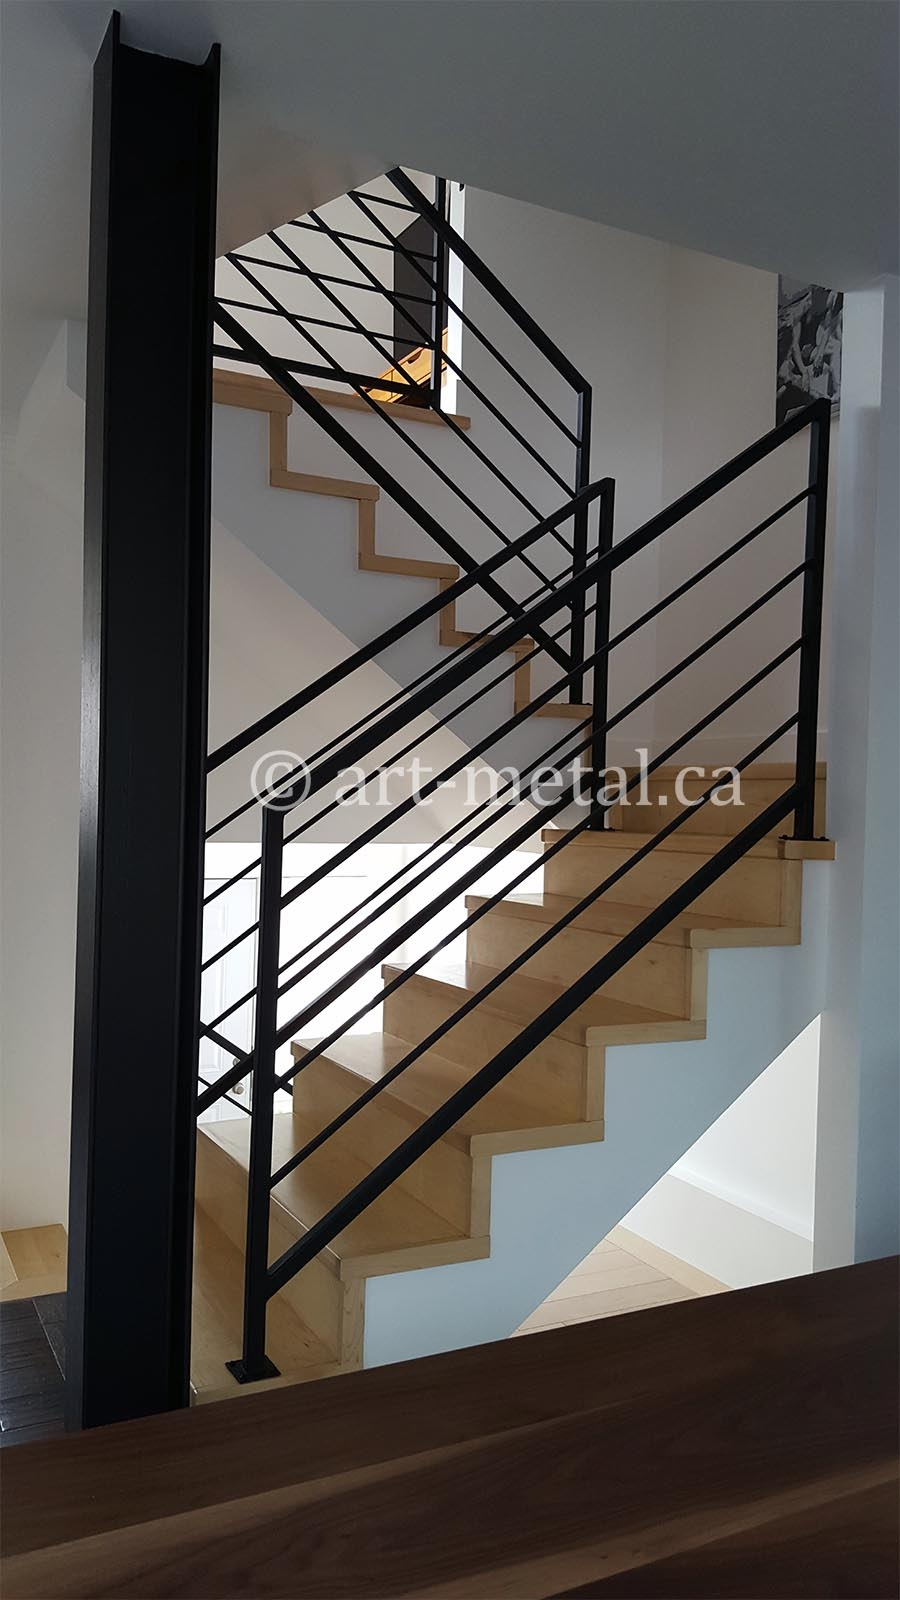 Interior Metal Stair Railing From The Best Contractor In Toronto | Iron Stair Railing Indoor | Cast Iron Balusters | Railing Kits | Interior Wrought | Rod Iron | Wood